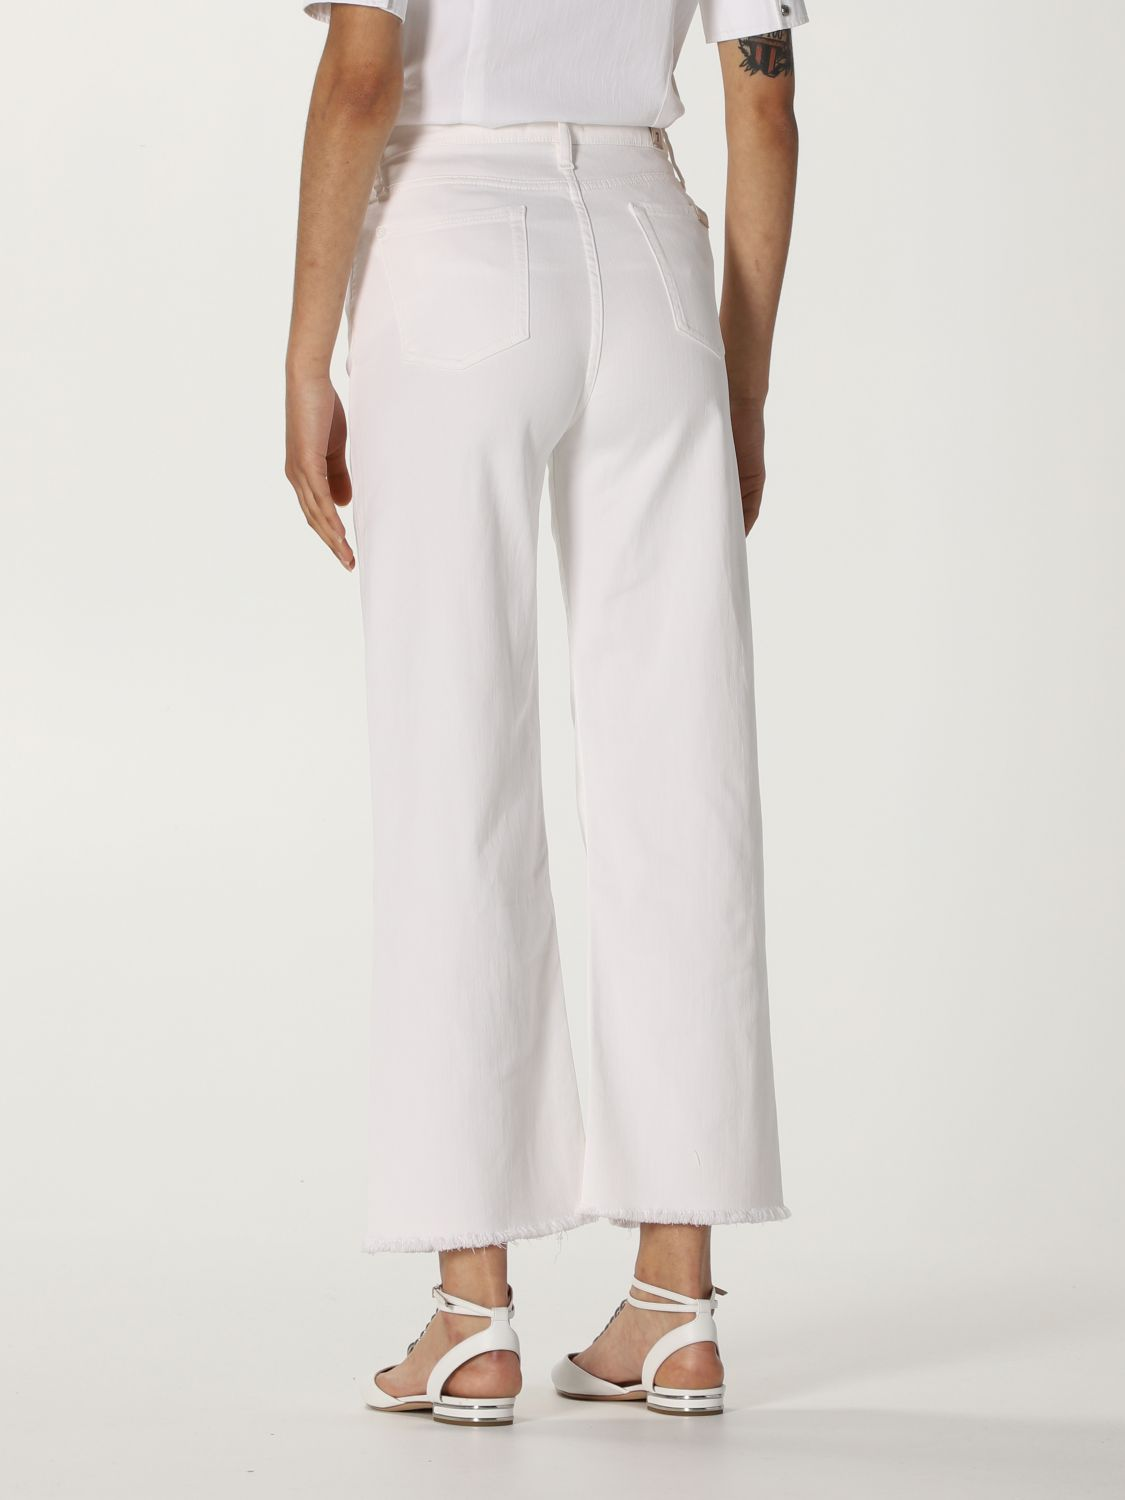 Jeans 7 For All Mankind: Jeans mujer 7 For All Mankind blanco 2